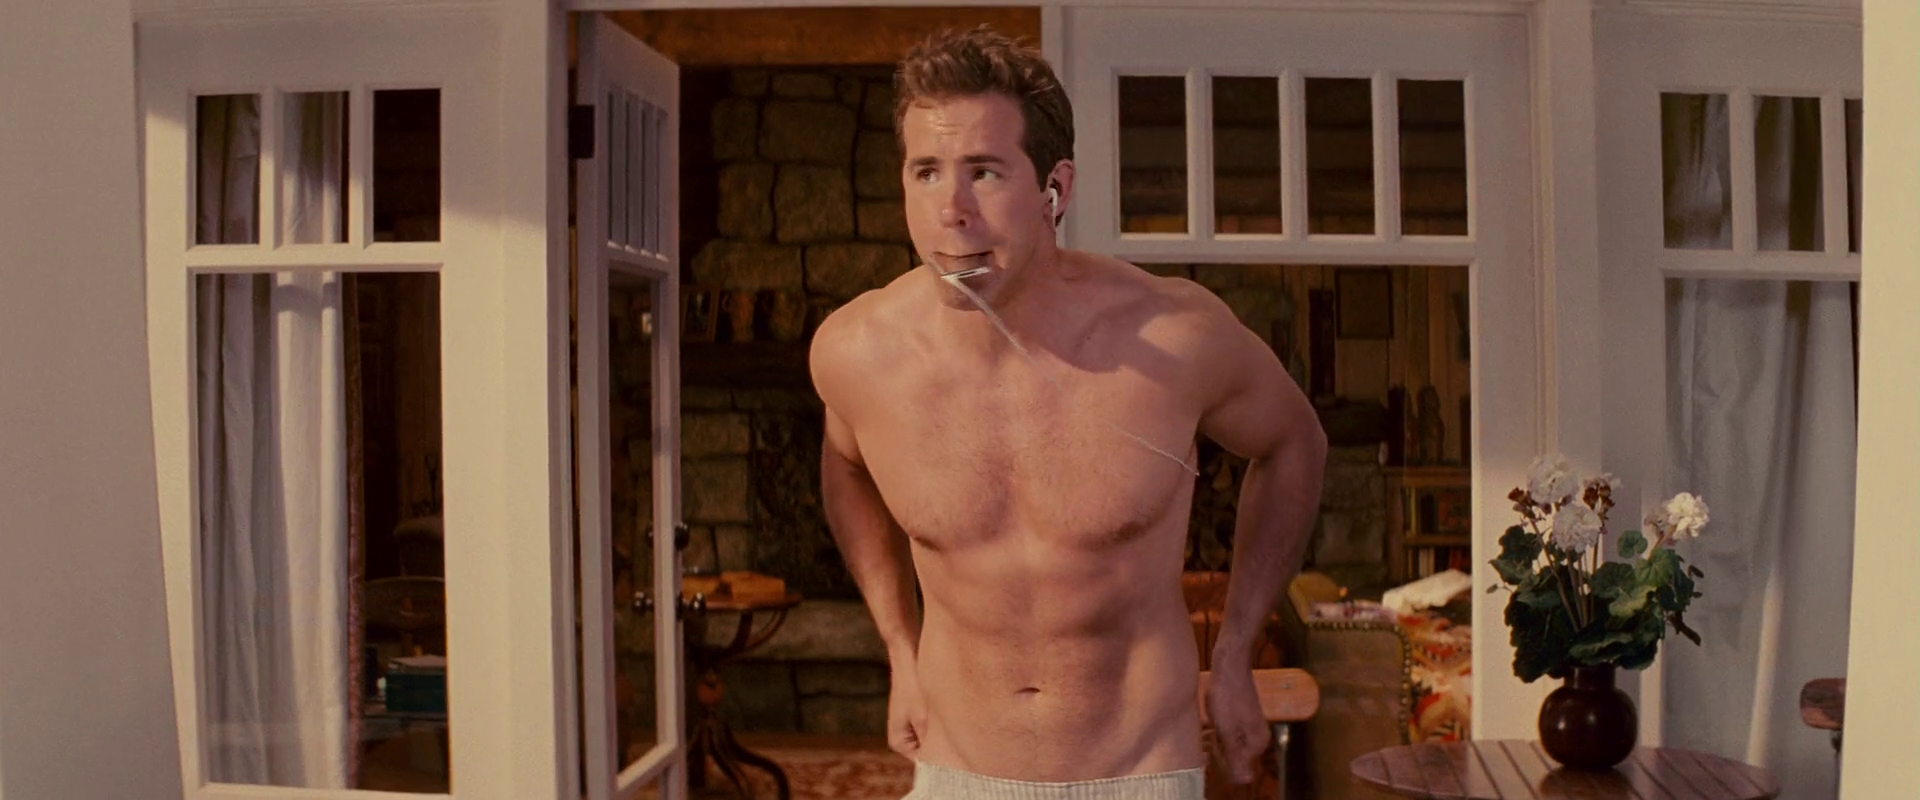 Ryan Reynolds As Andrew Paxton Shirtless Naked In The Proposal Fanboyism